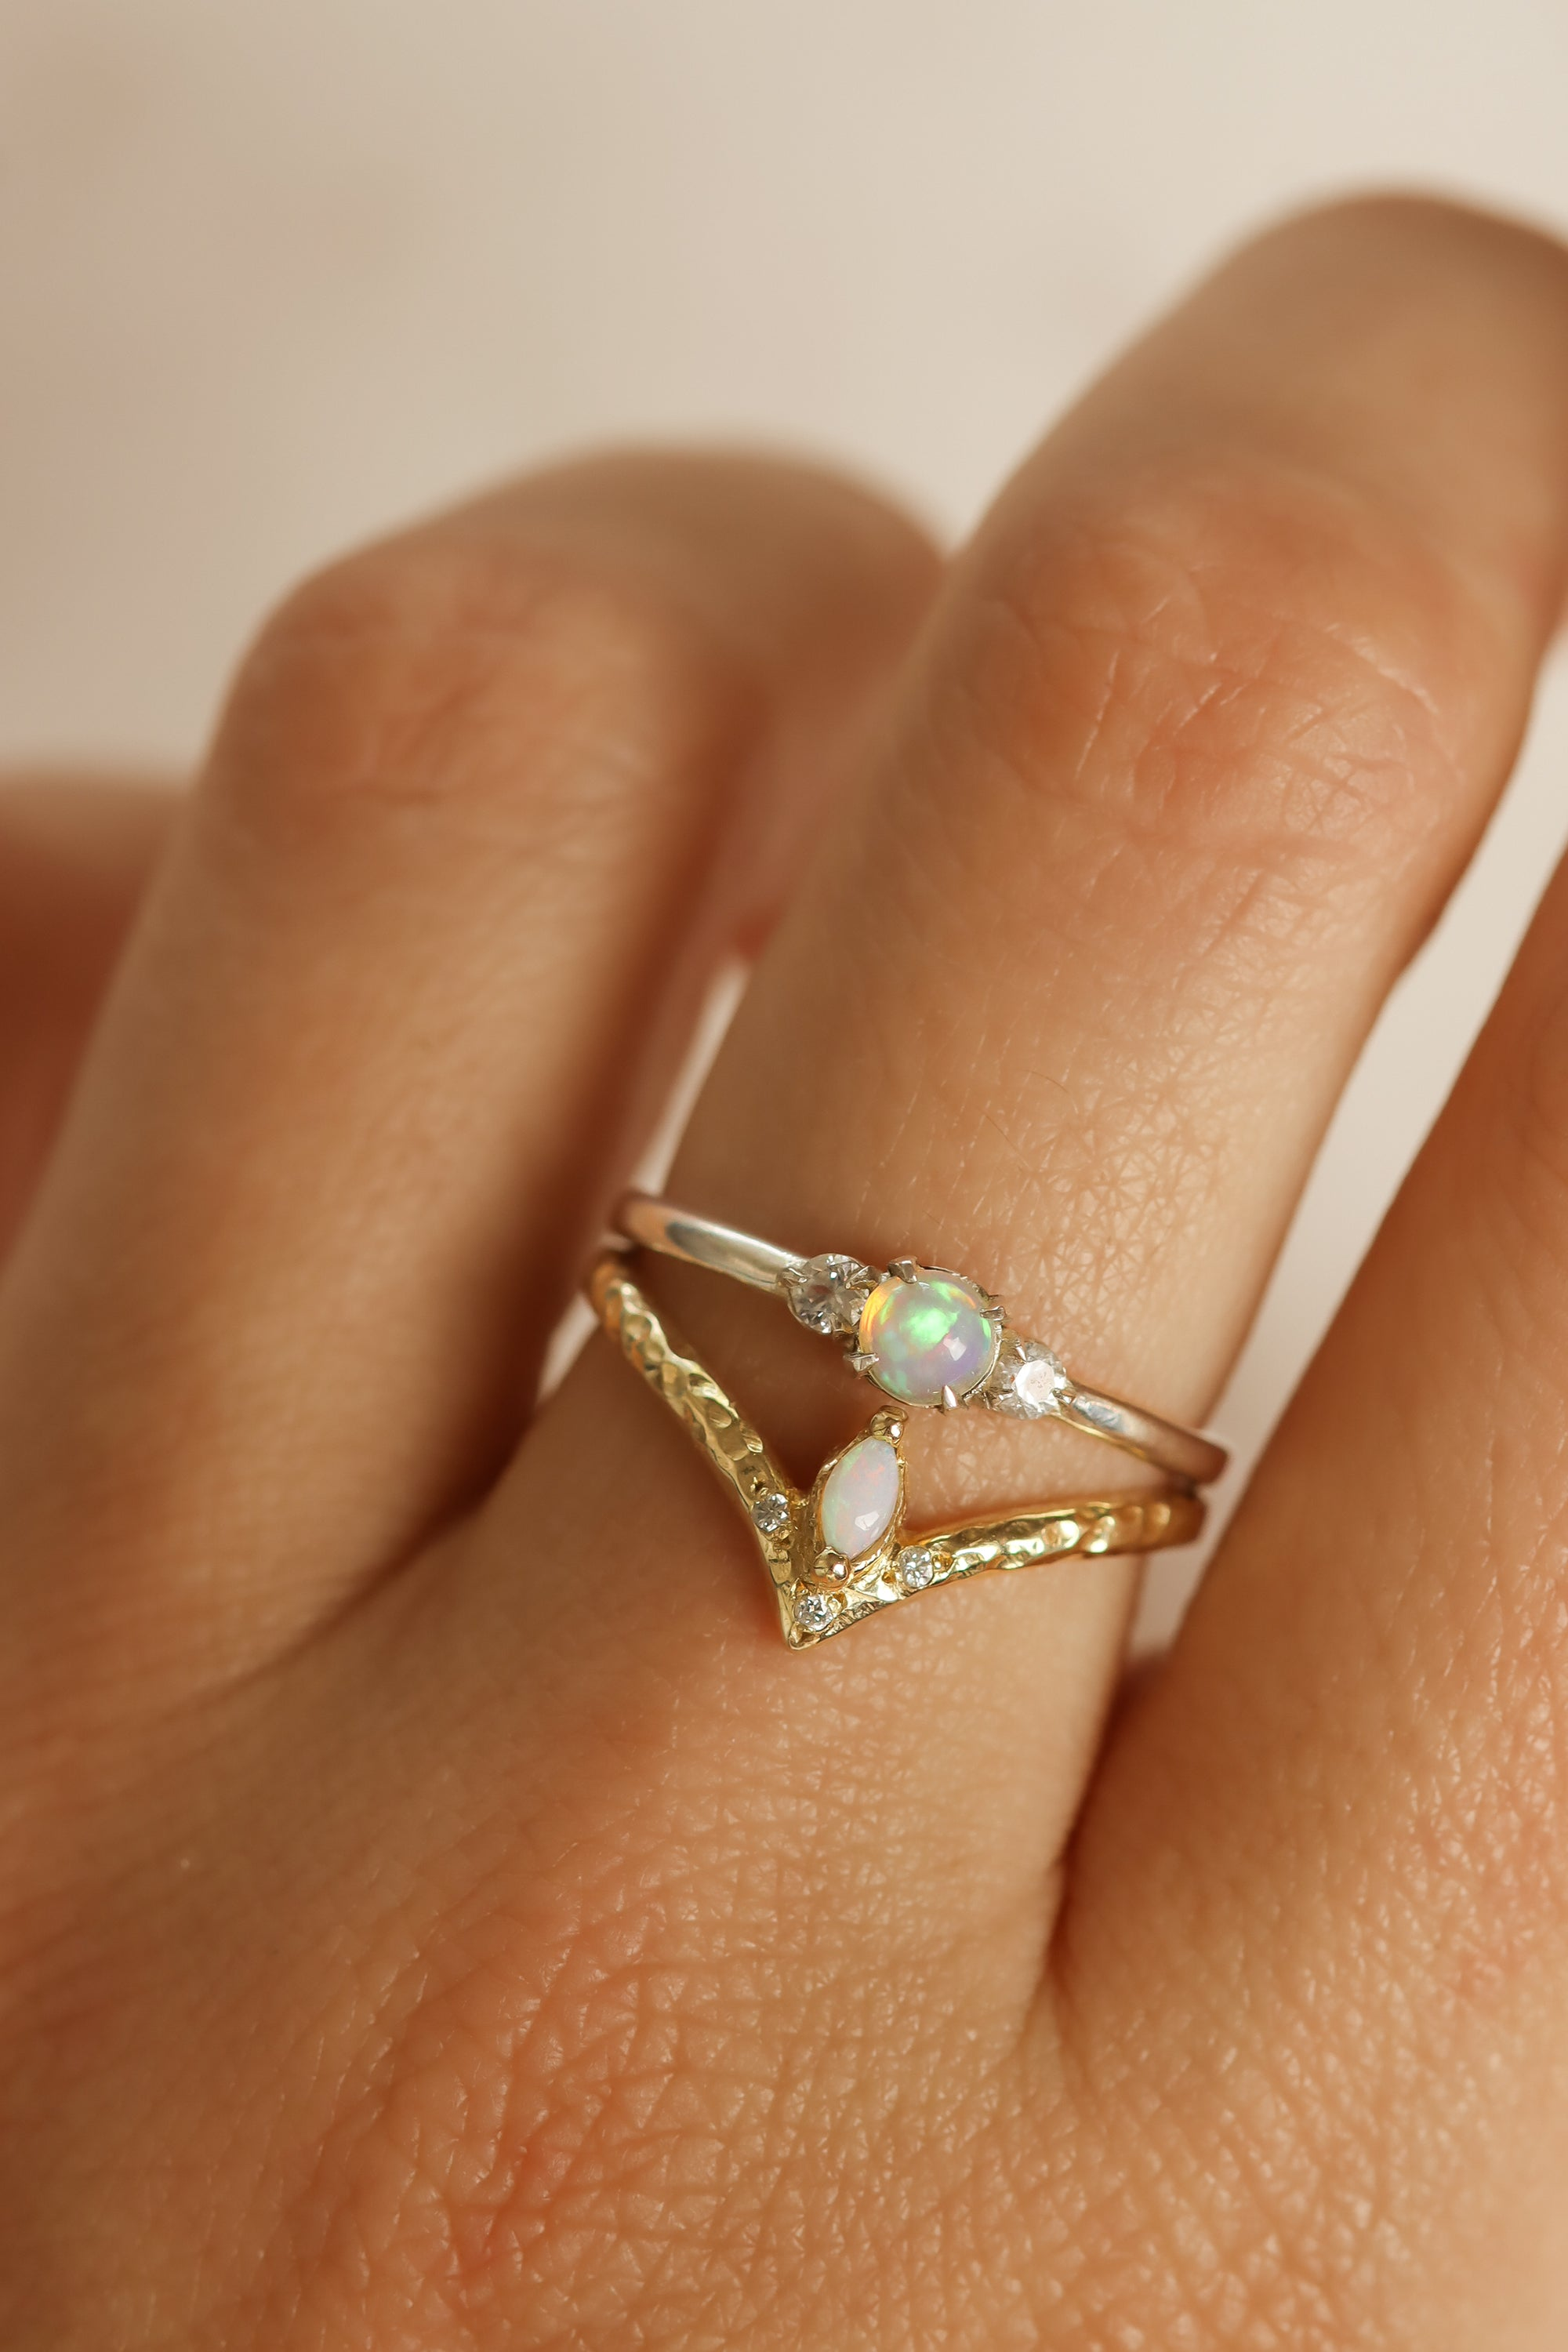 caring-for-opal-jewelry-difference-between-australian-opal-ethiopian-opal